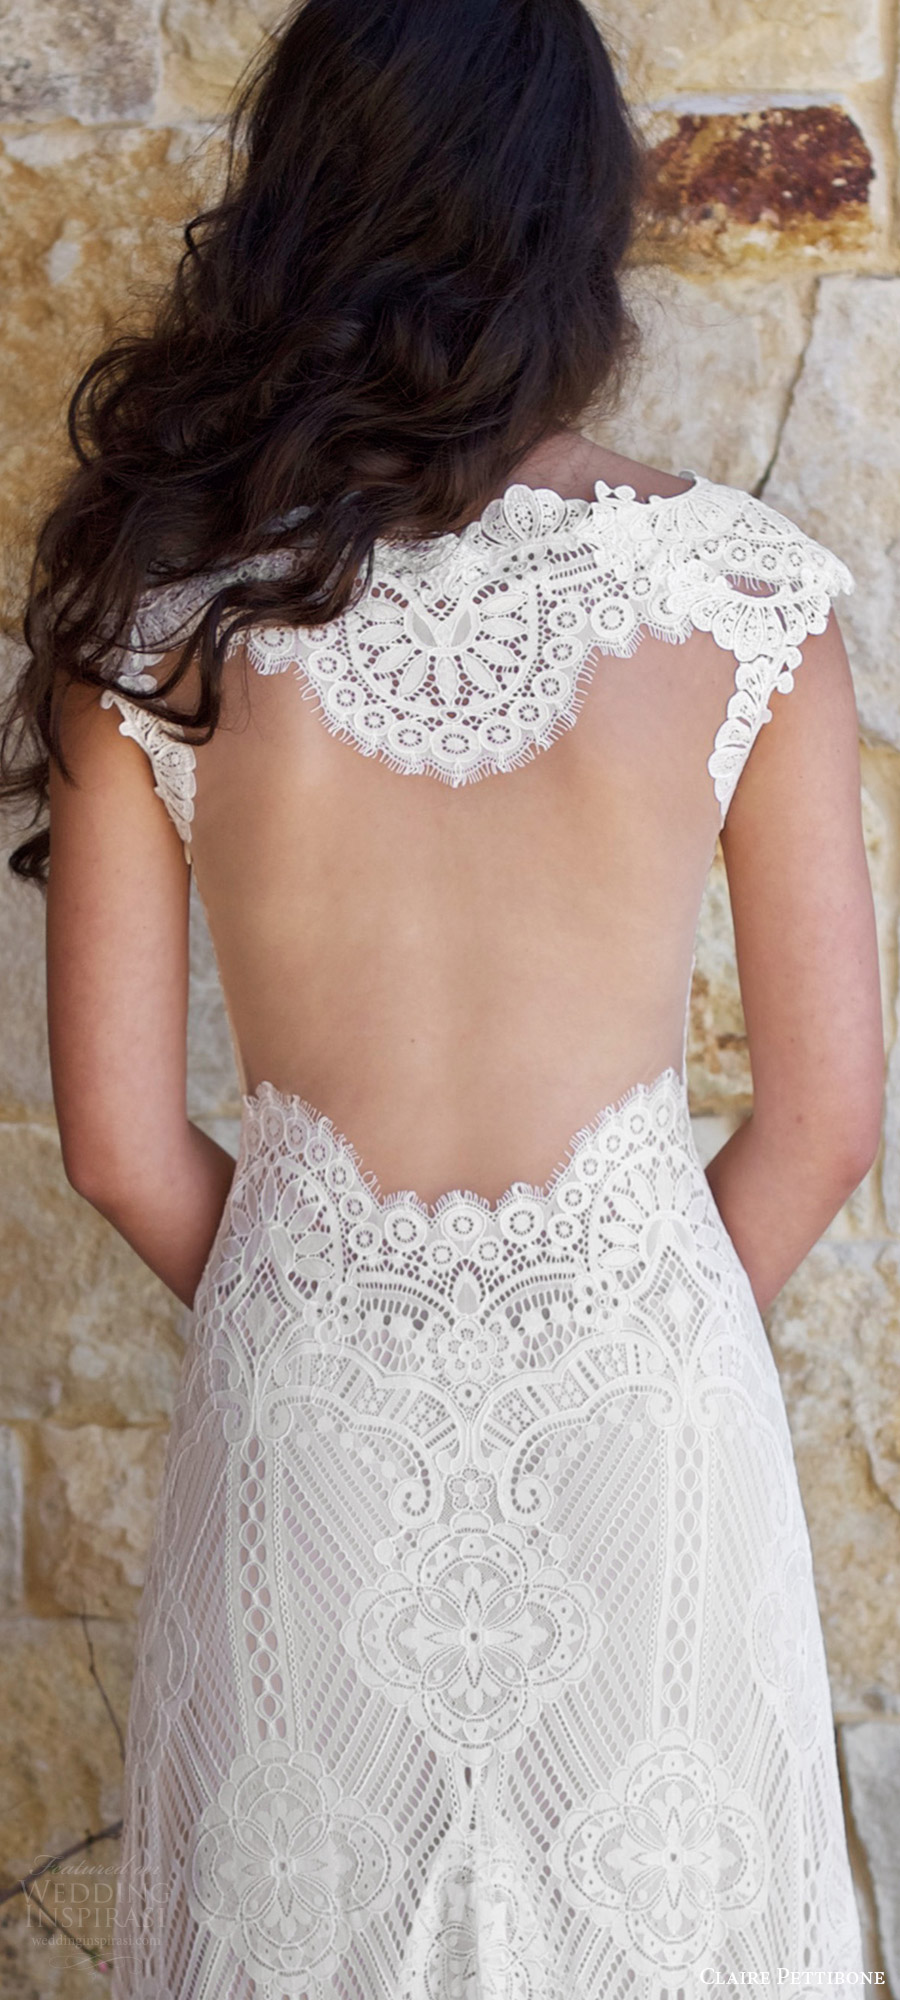 claire pettibone spring 2018 bridal cap sleeve sweetheart lace trumpet wedding dress (calistoga) zbv illusion back train boho romantic